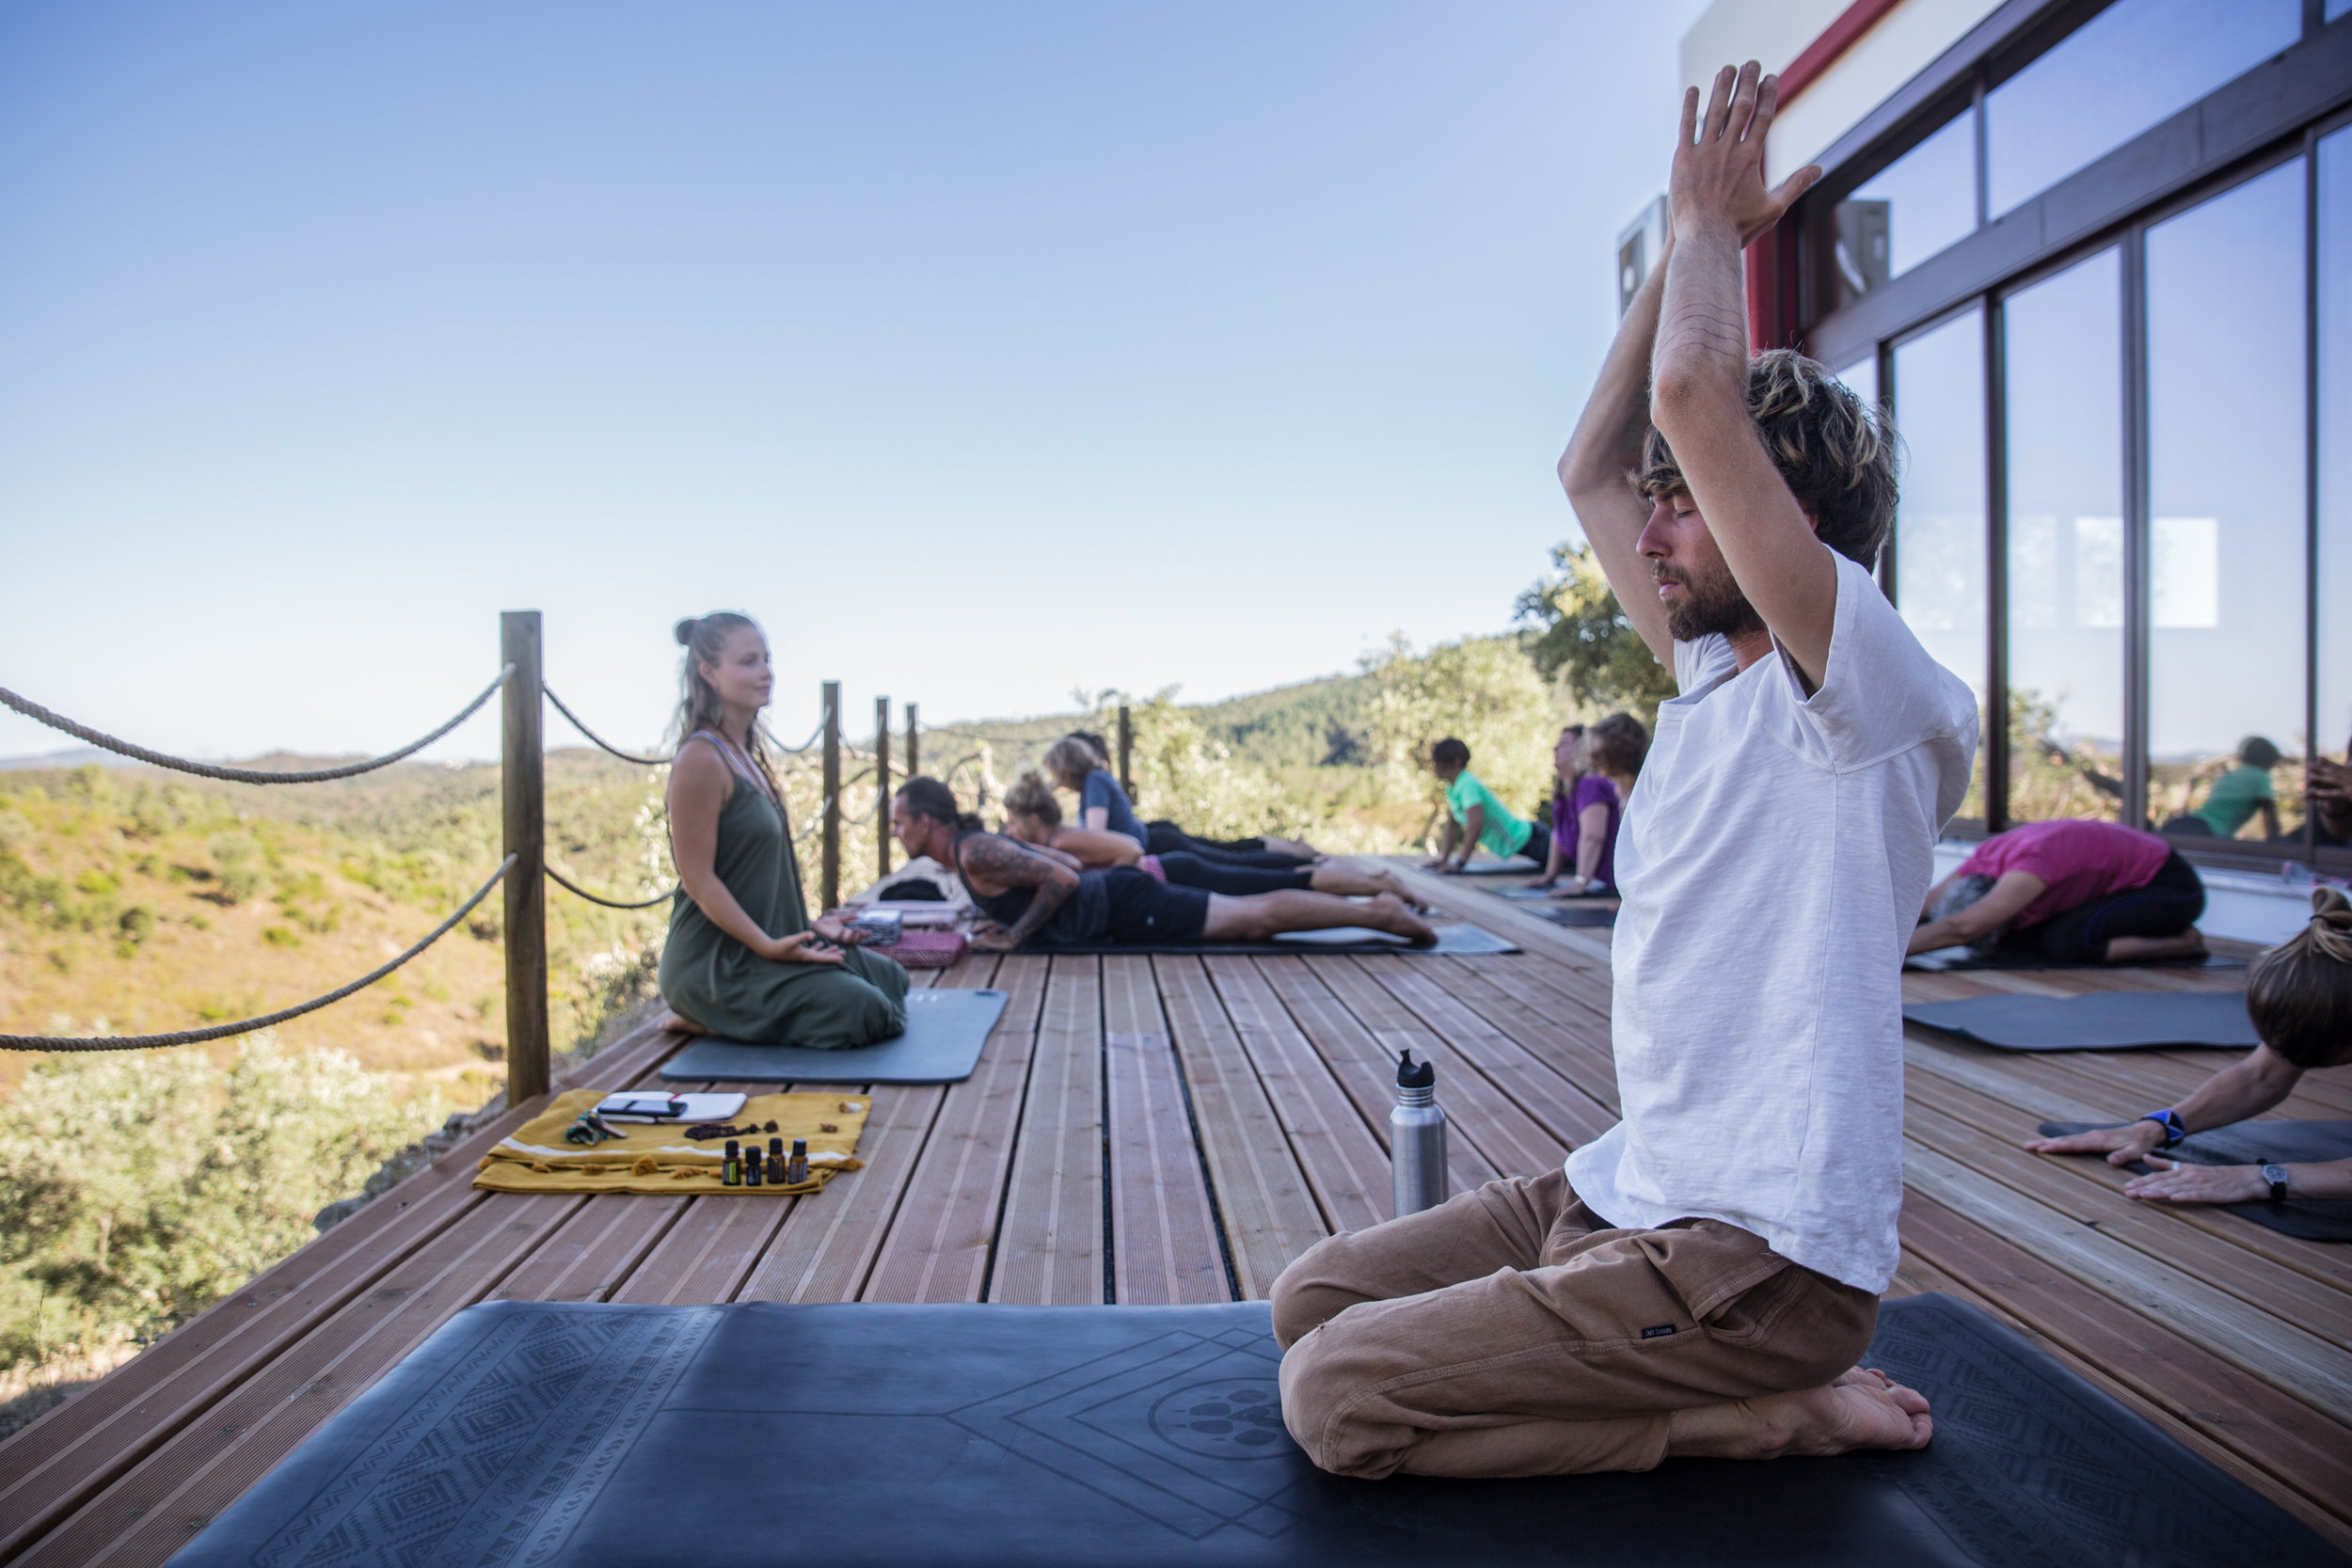 WildViewRetreat_Yoga_Class_31.JPG